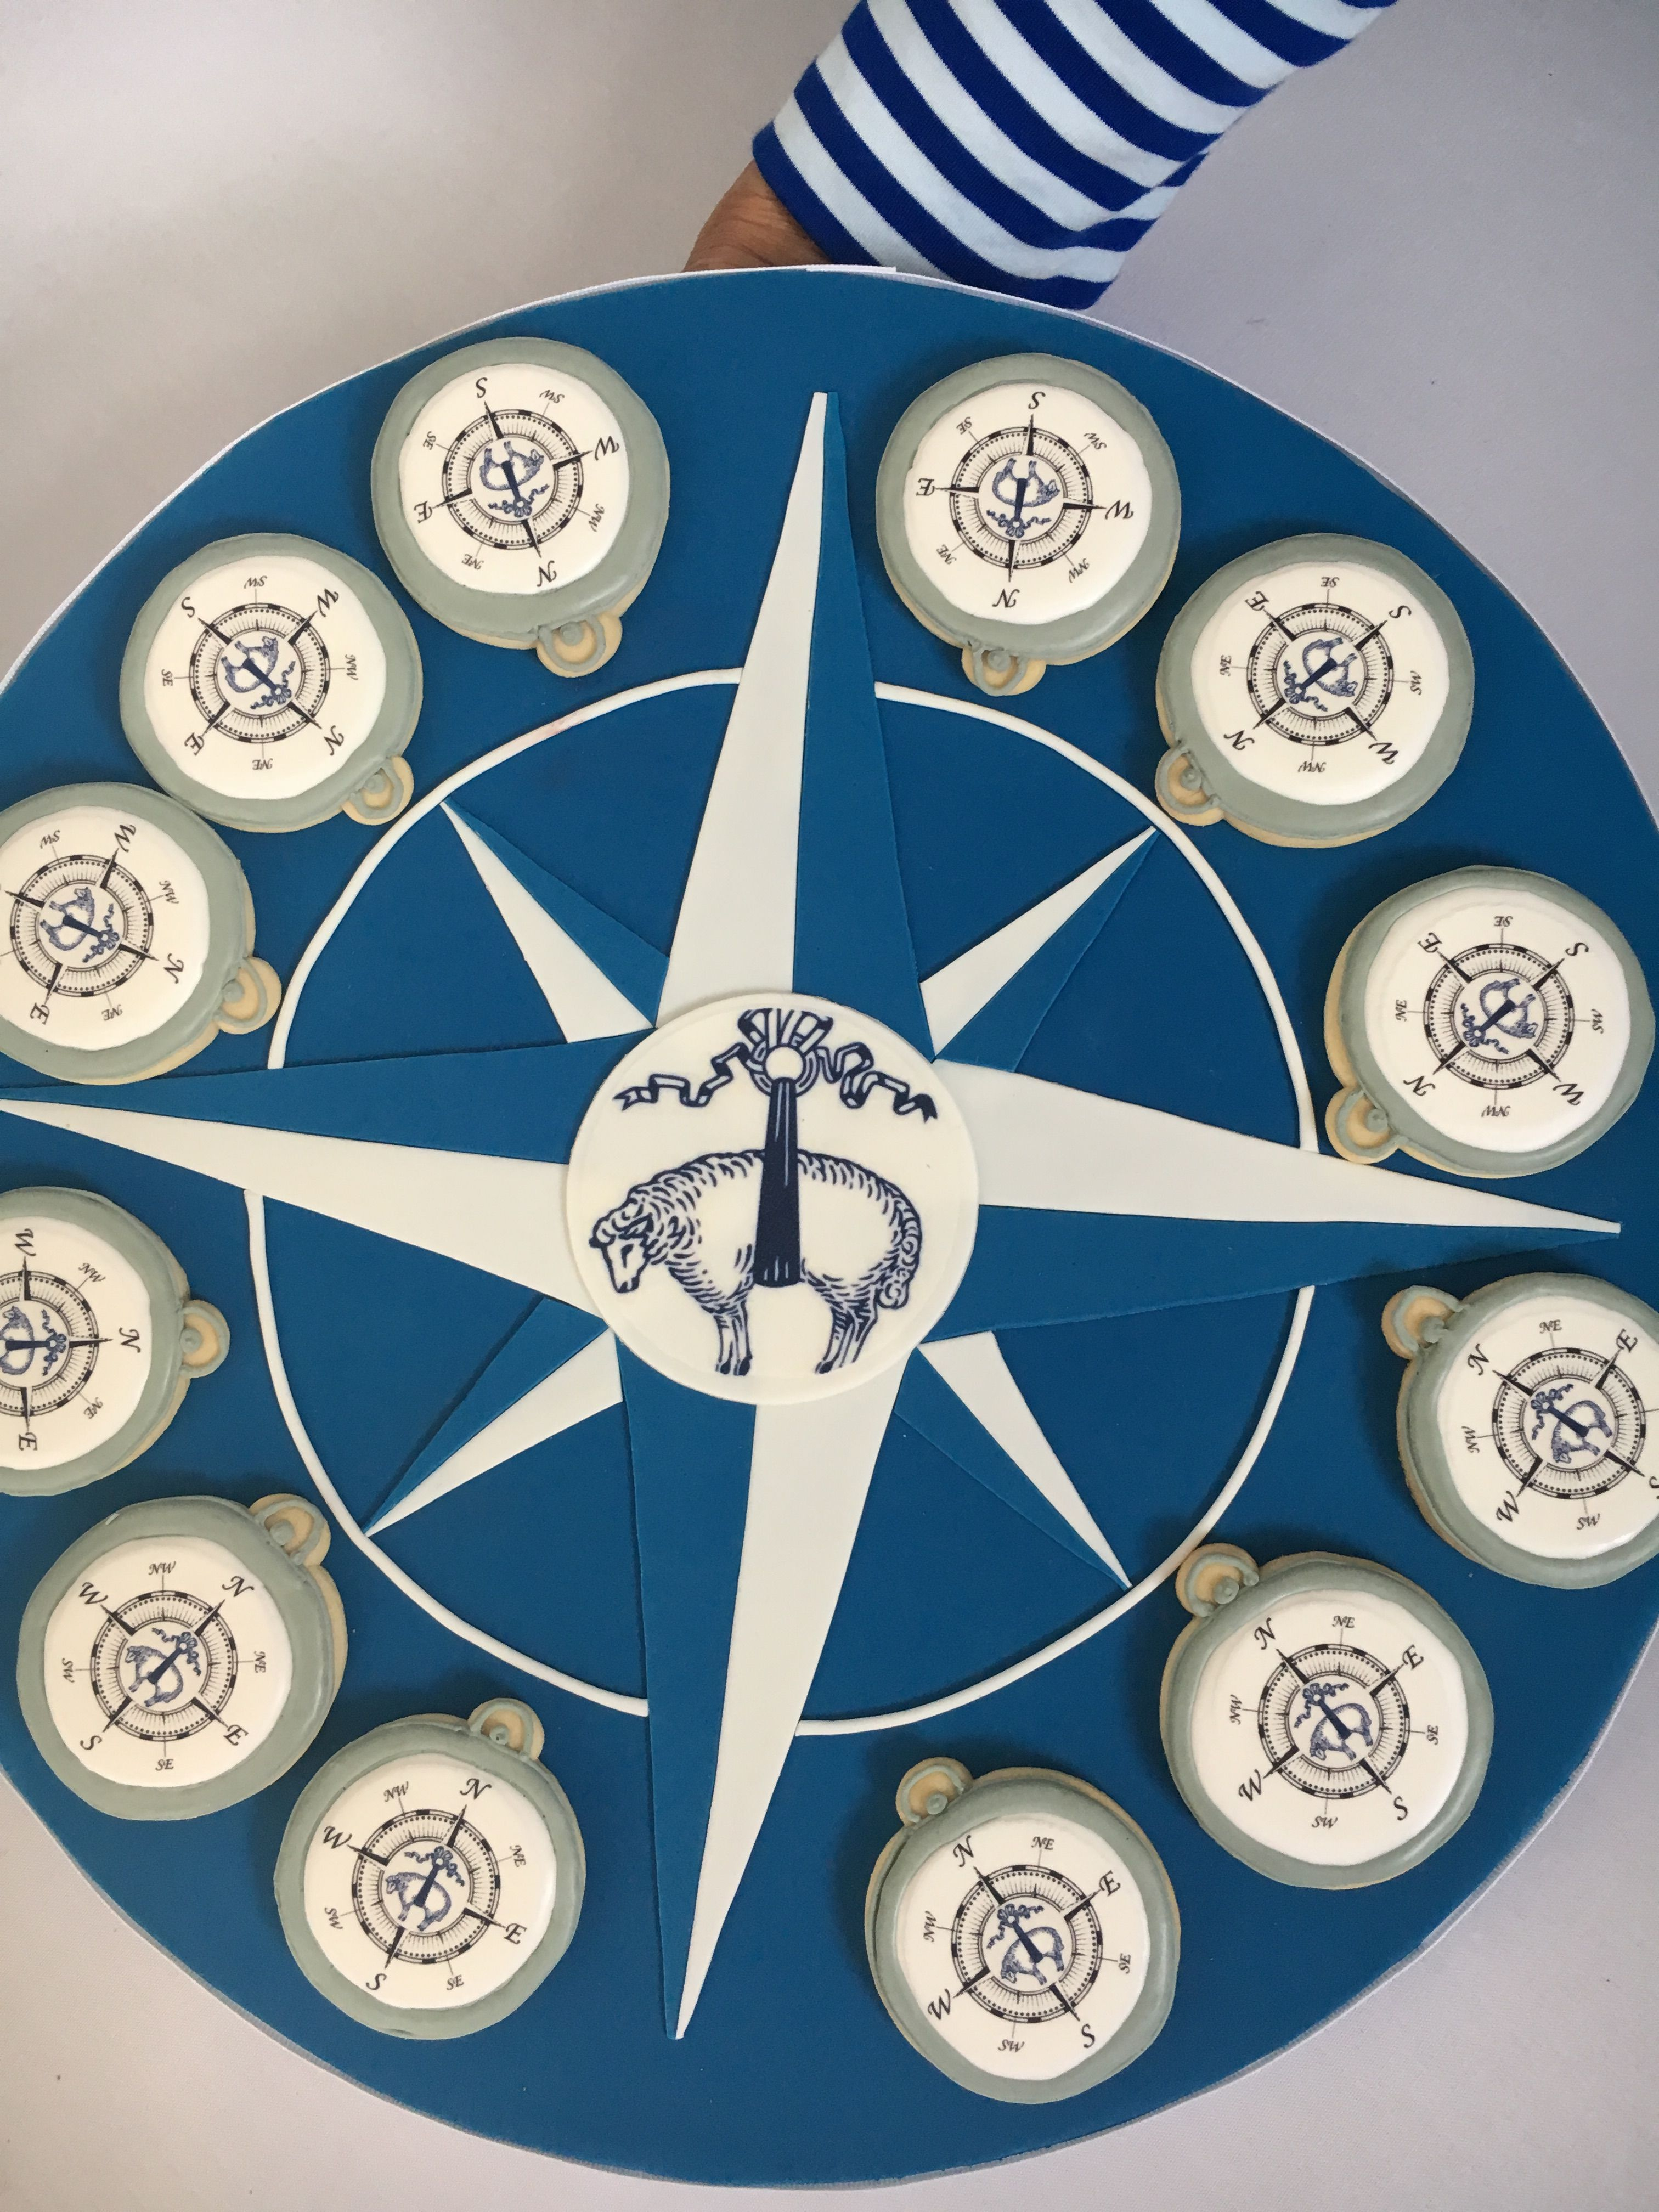 Compass Cookies On Our Custom Fondant Trays From The Camp Brooks